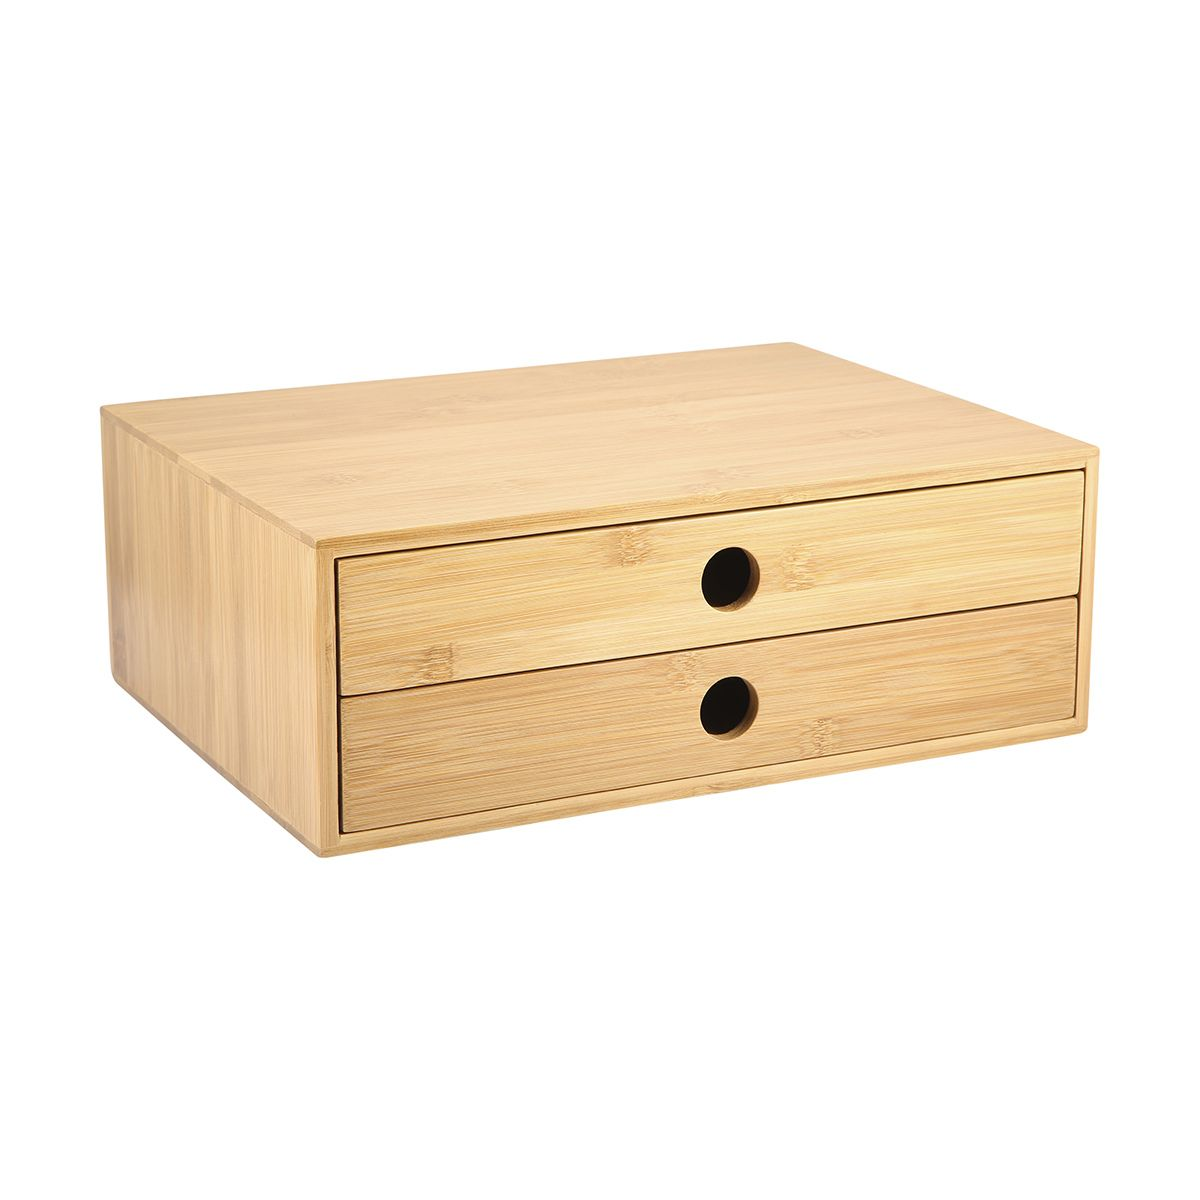 Bamboo Desk Top Drawers Kmart Top Drawer Drawers Bamboo